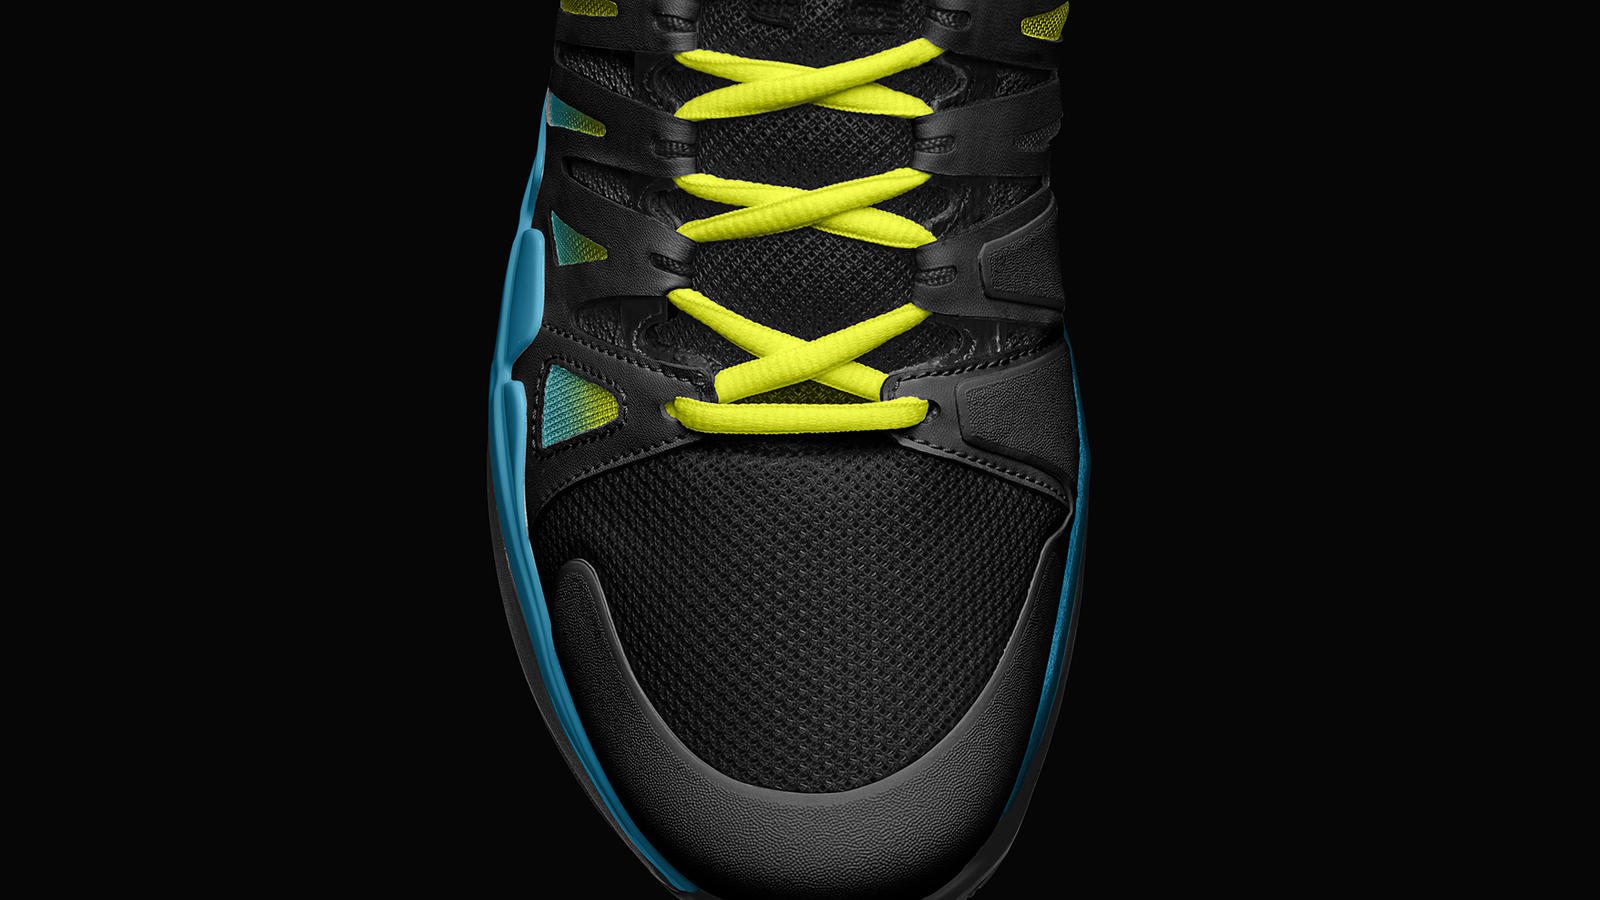 Sp13_TN_NIKEiD_Vapor9_Detail_4